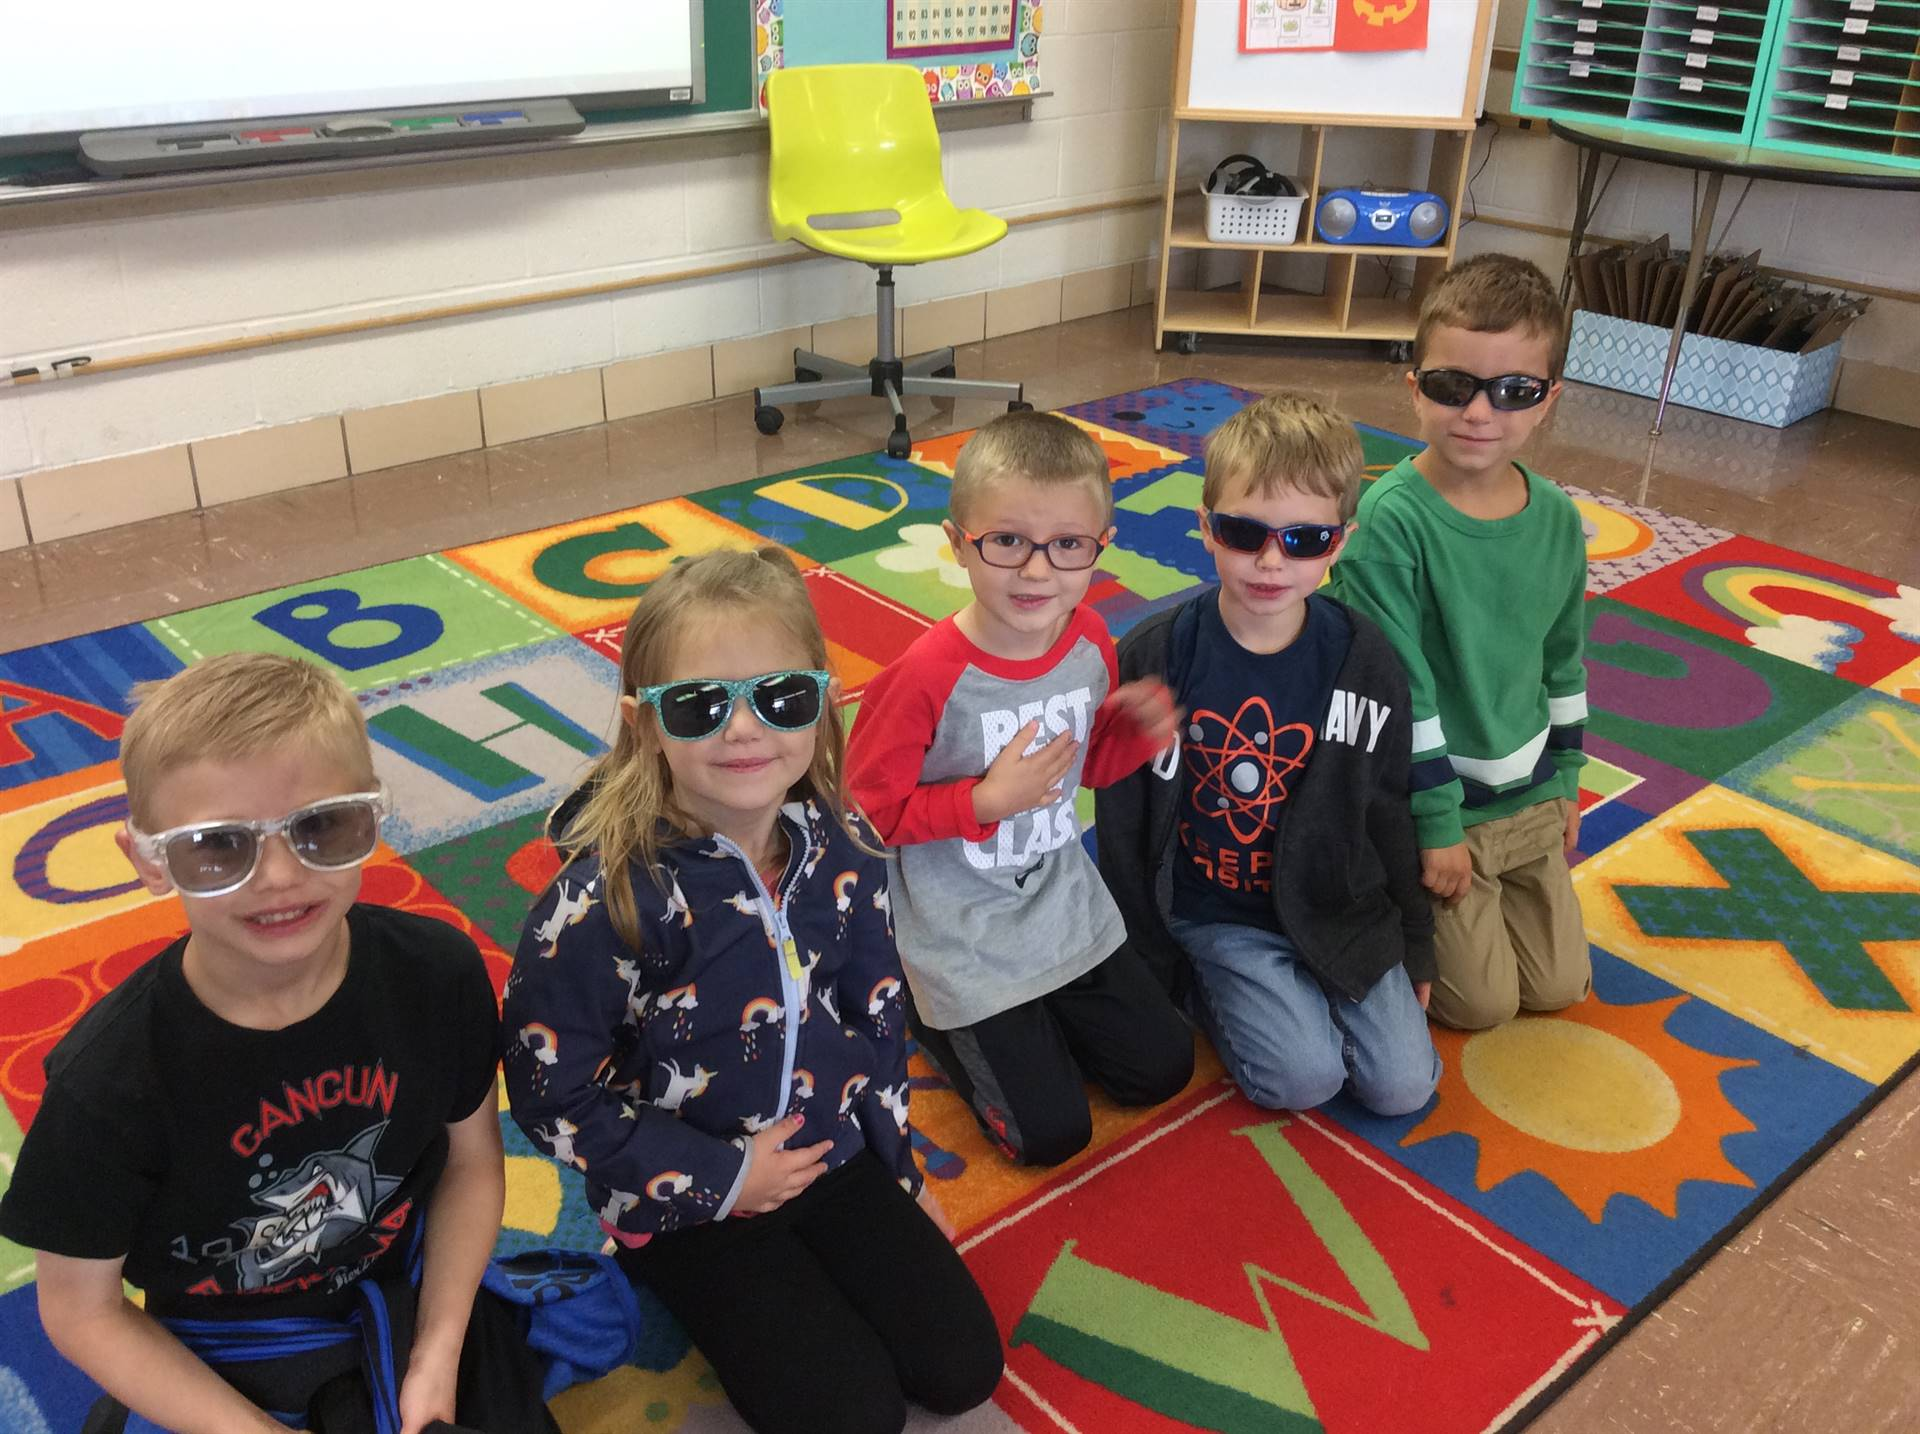 Sunglasses Day at Chippewa!